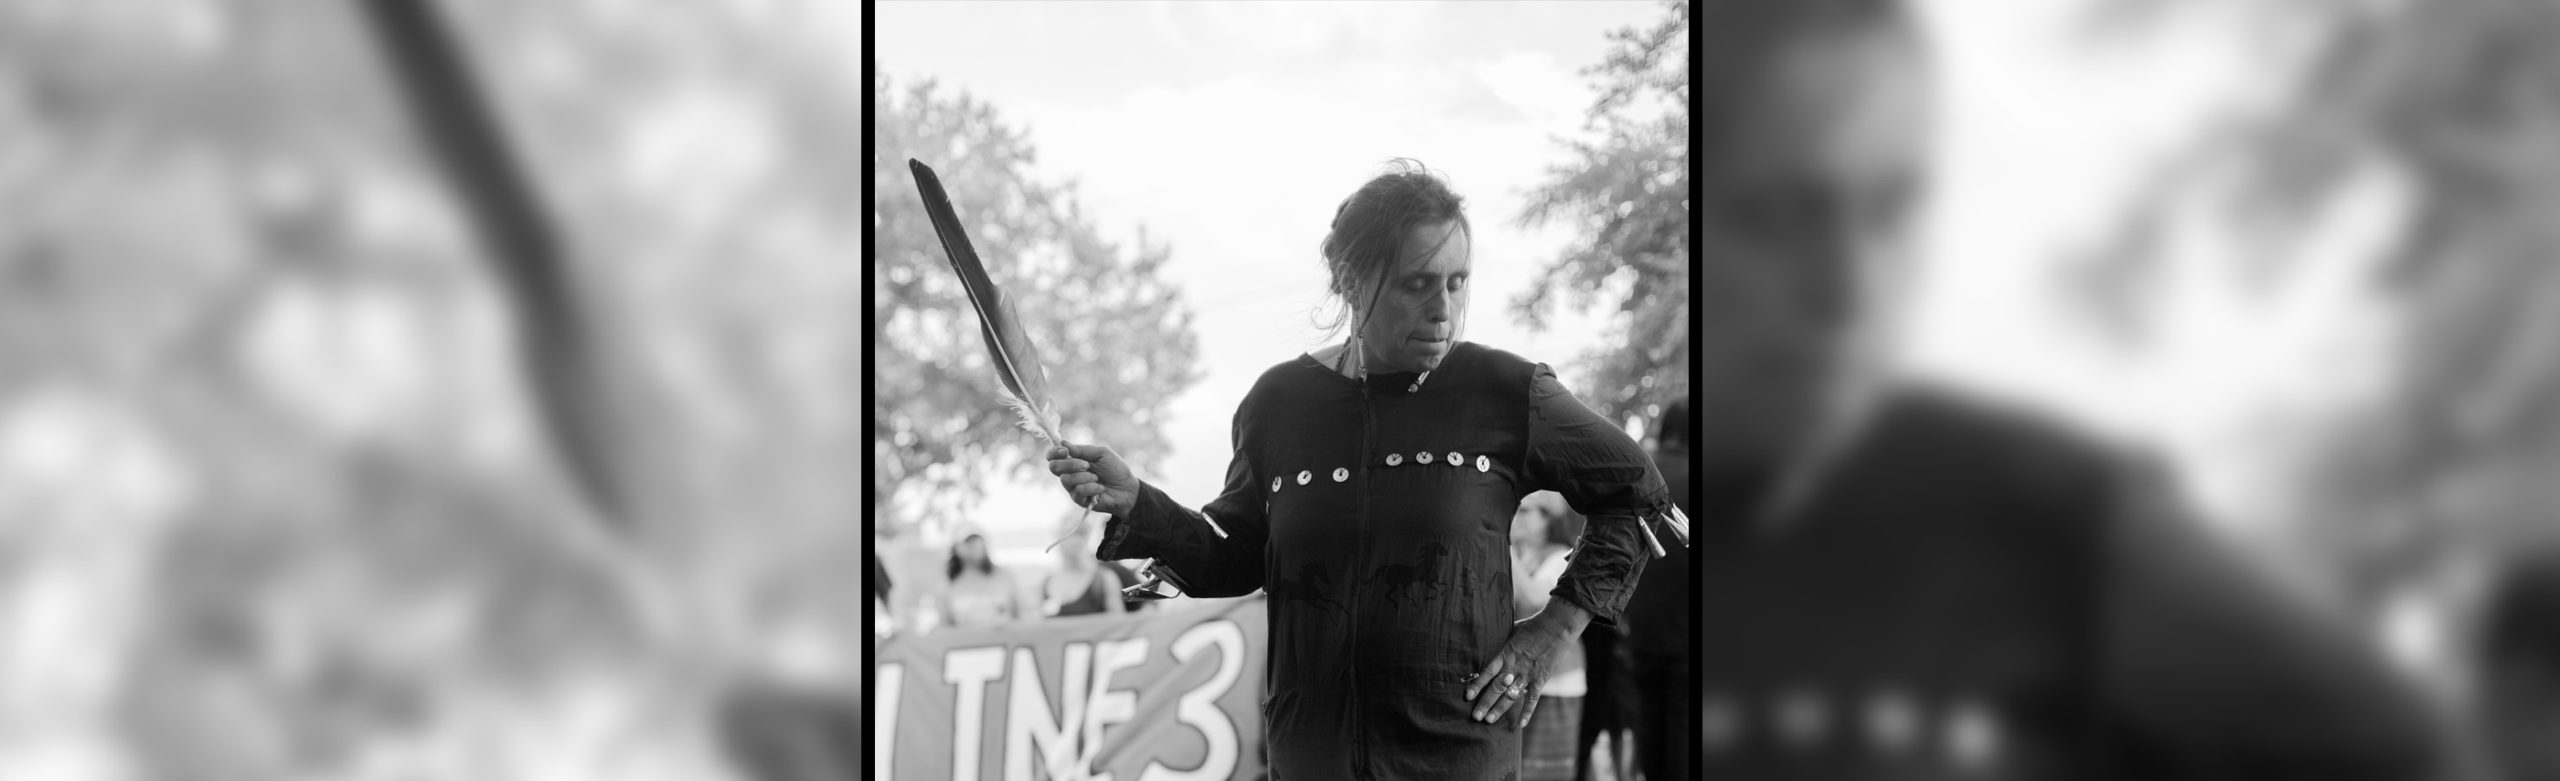 Renowned Author Winona LaDuke to Give UM's President's Lecture at The Wilma Image